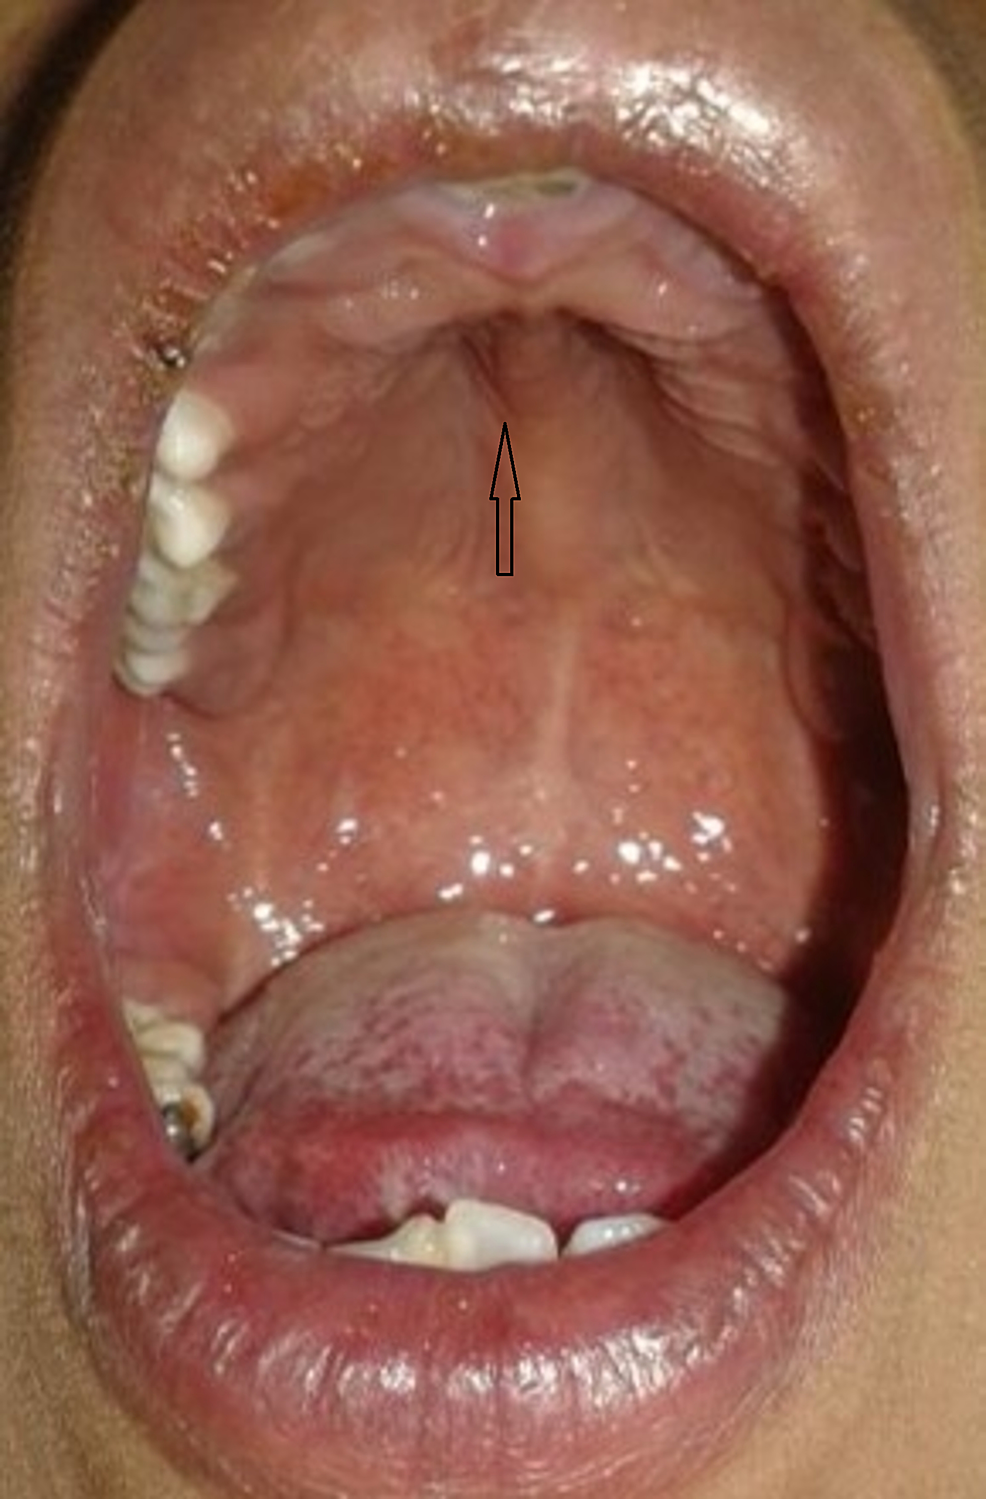 High-arched-palate-(indicated-by-an-arrow)